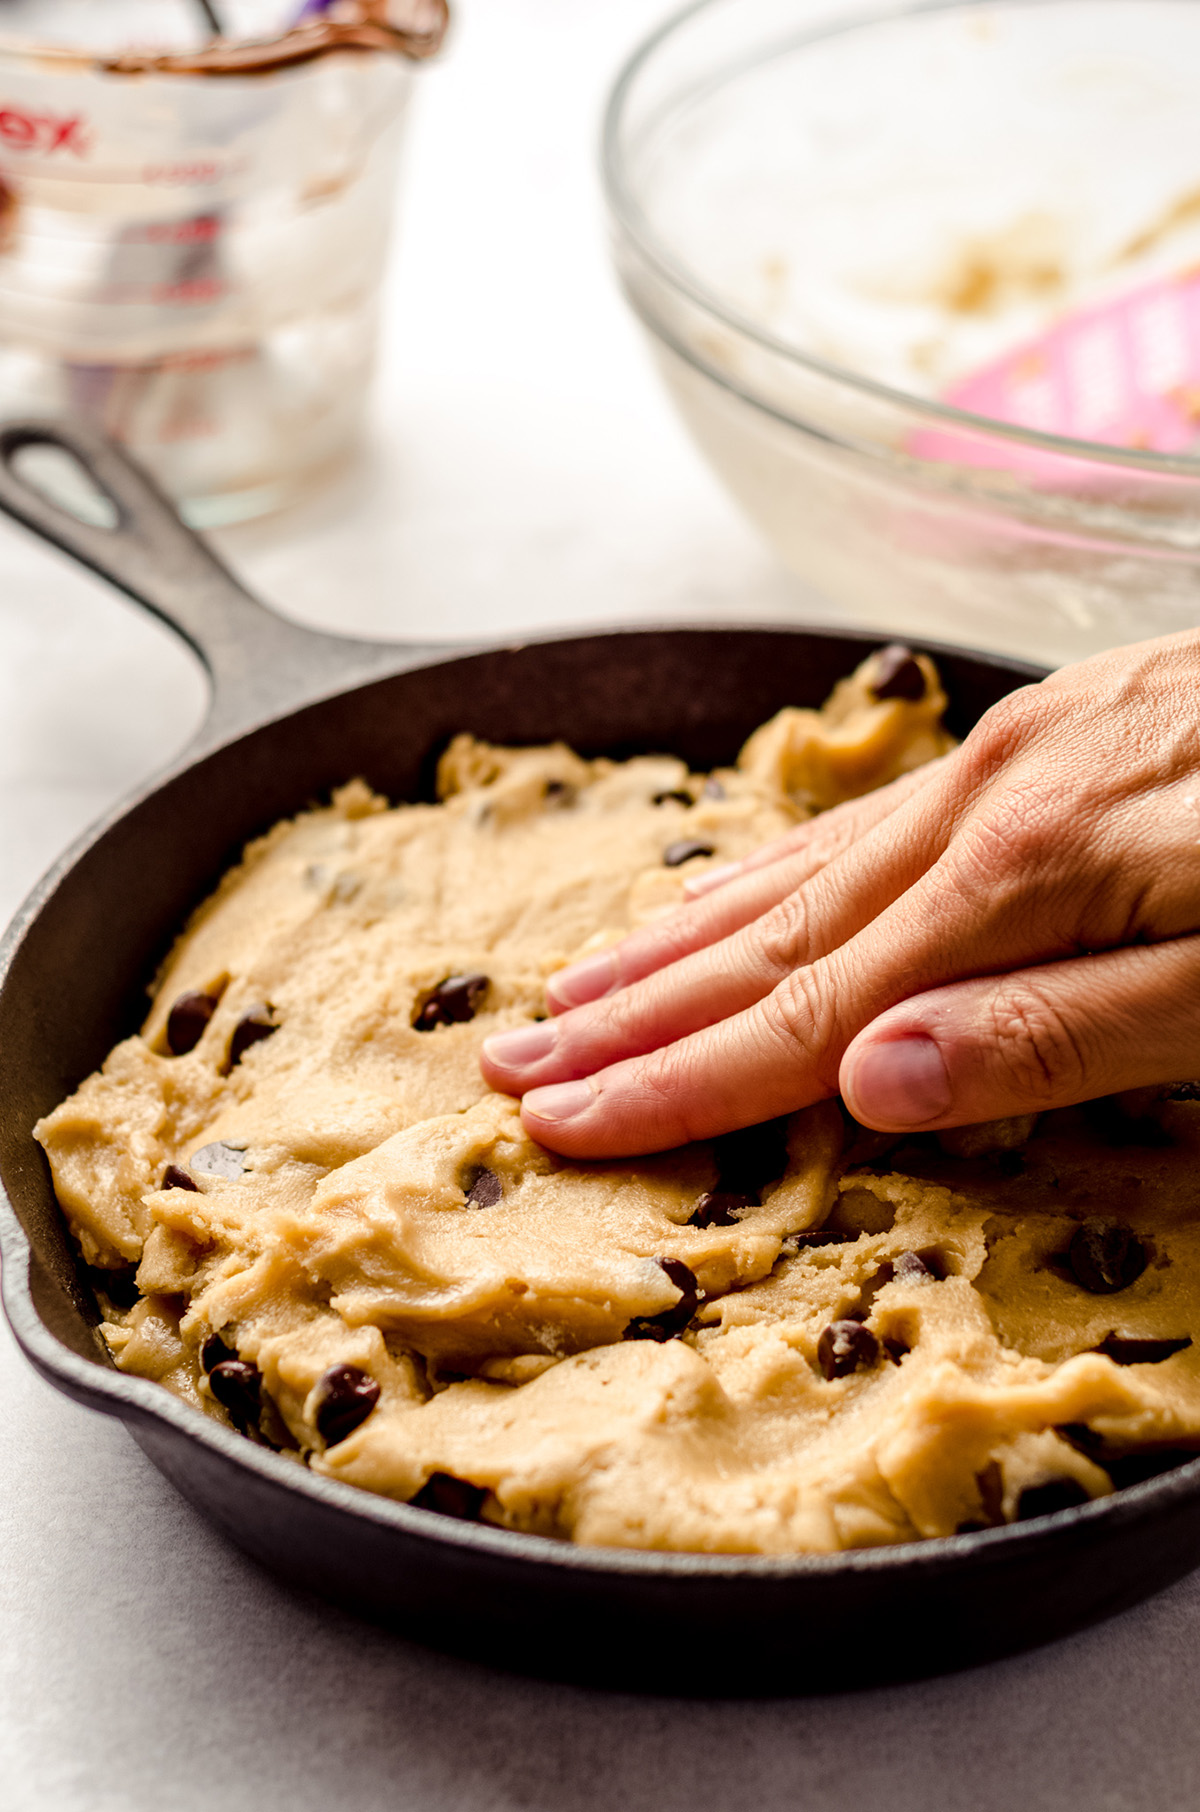 pressing cookie dough together in a skillet cookie